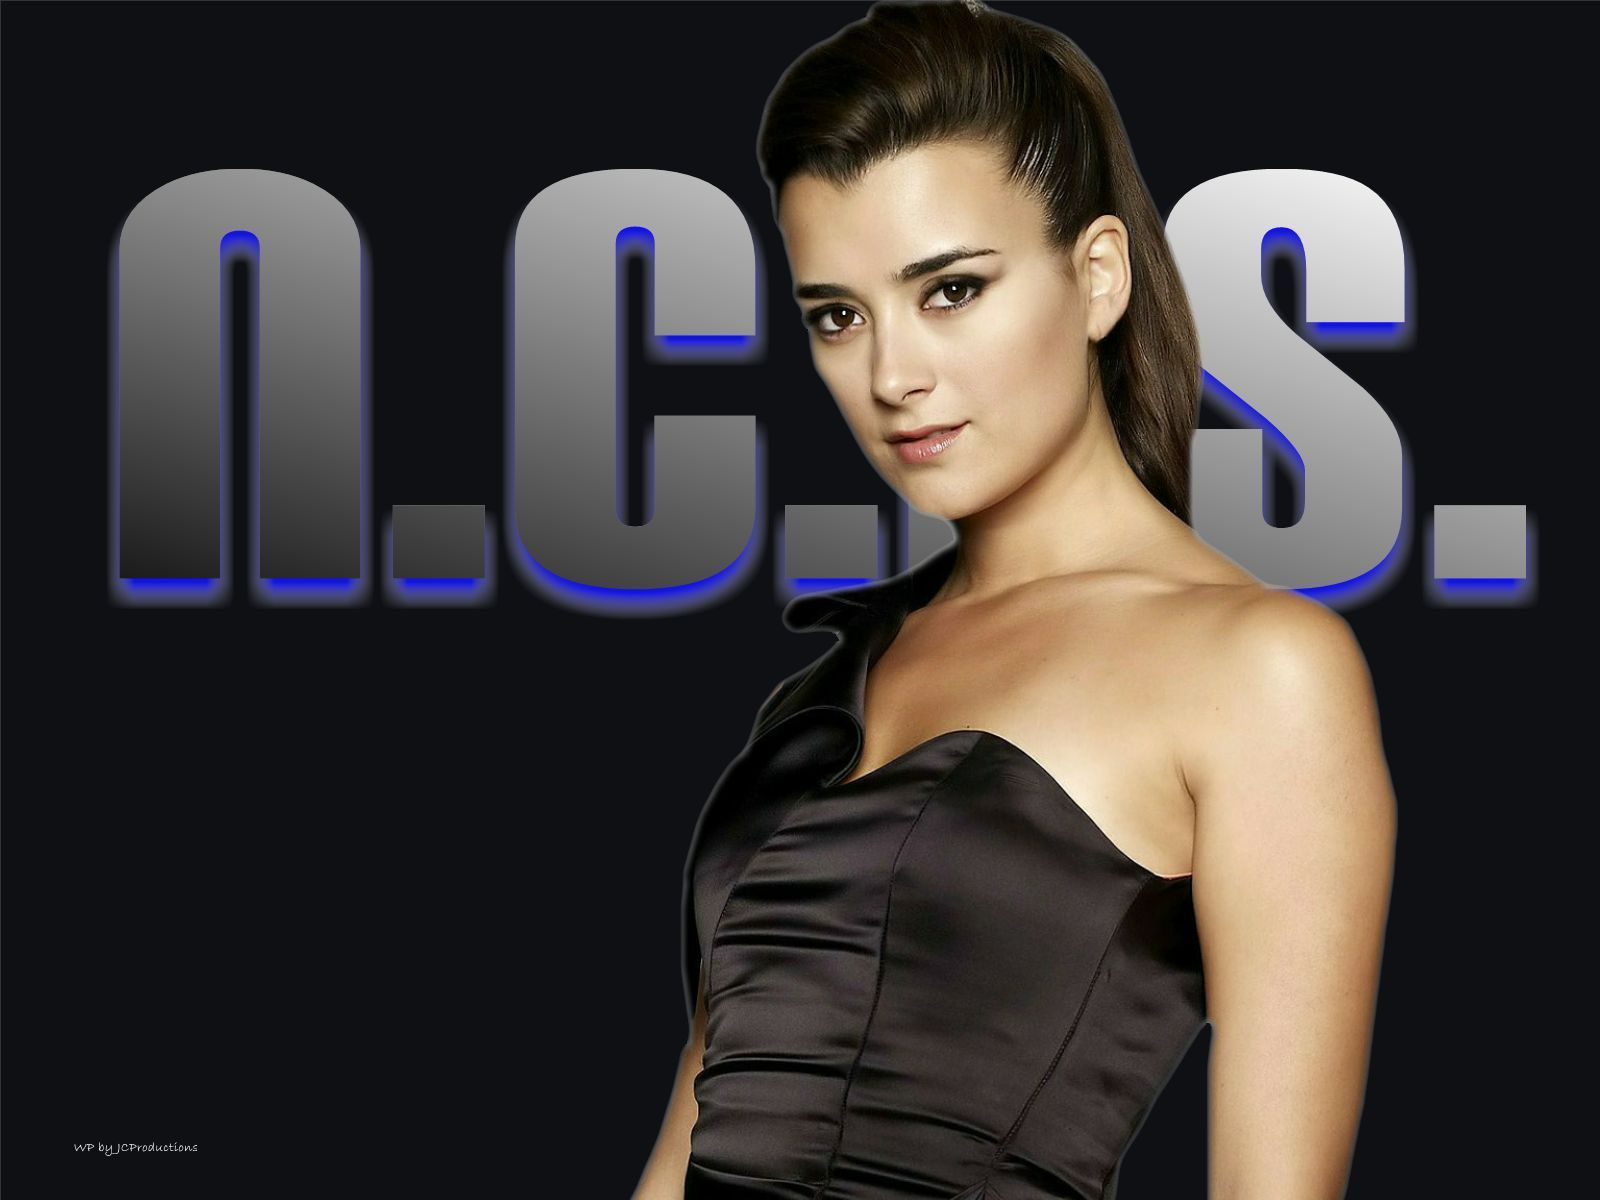 Ziva David Wallpapers Top Free Ziva David Backgrounds